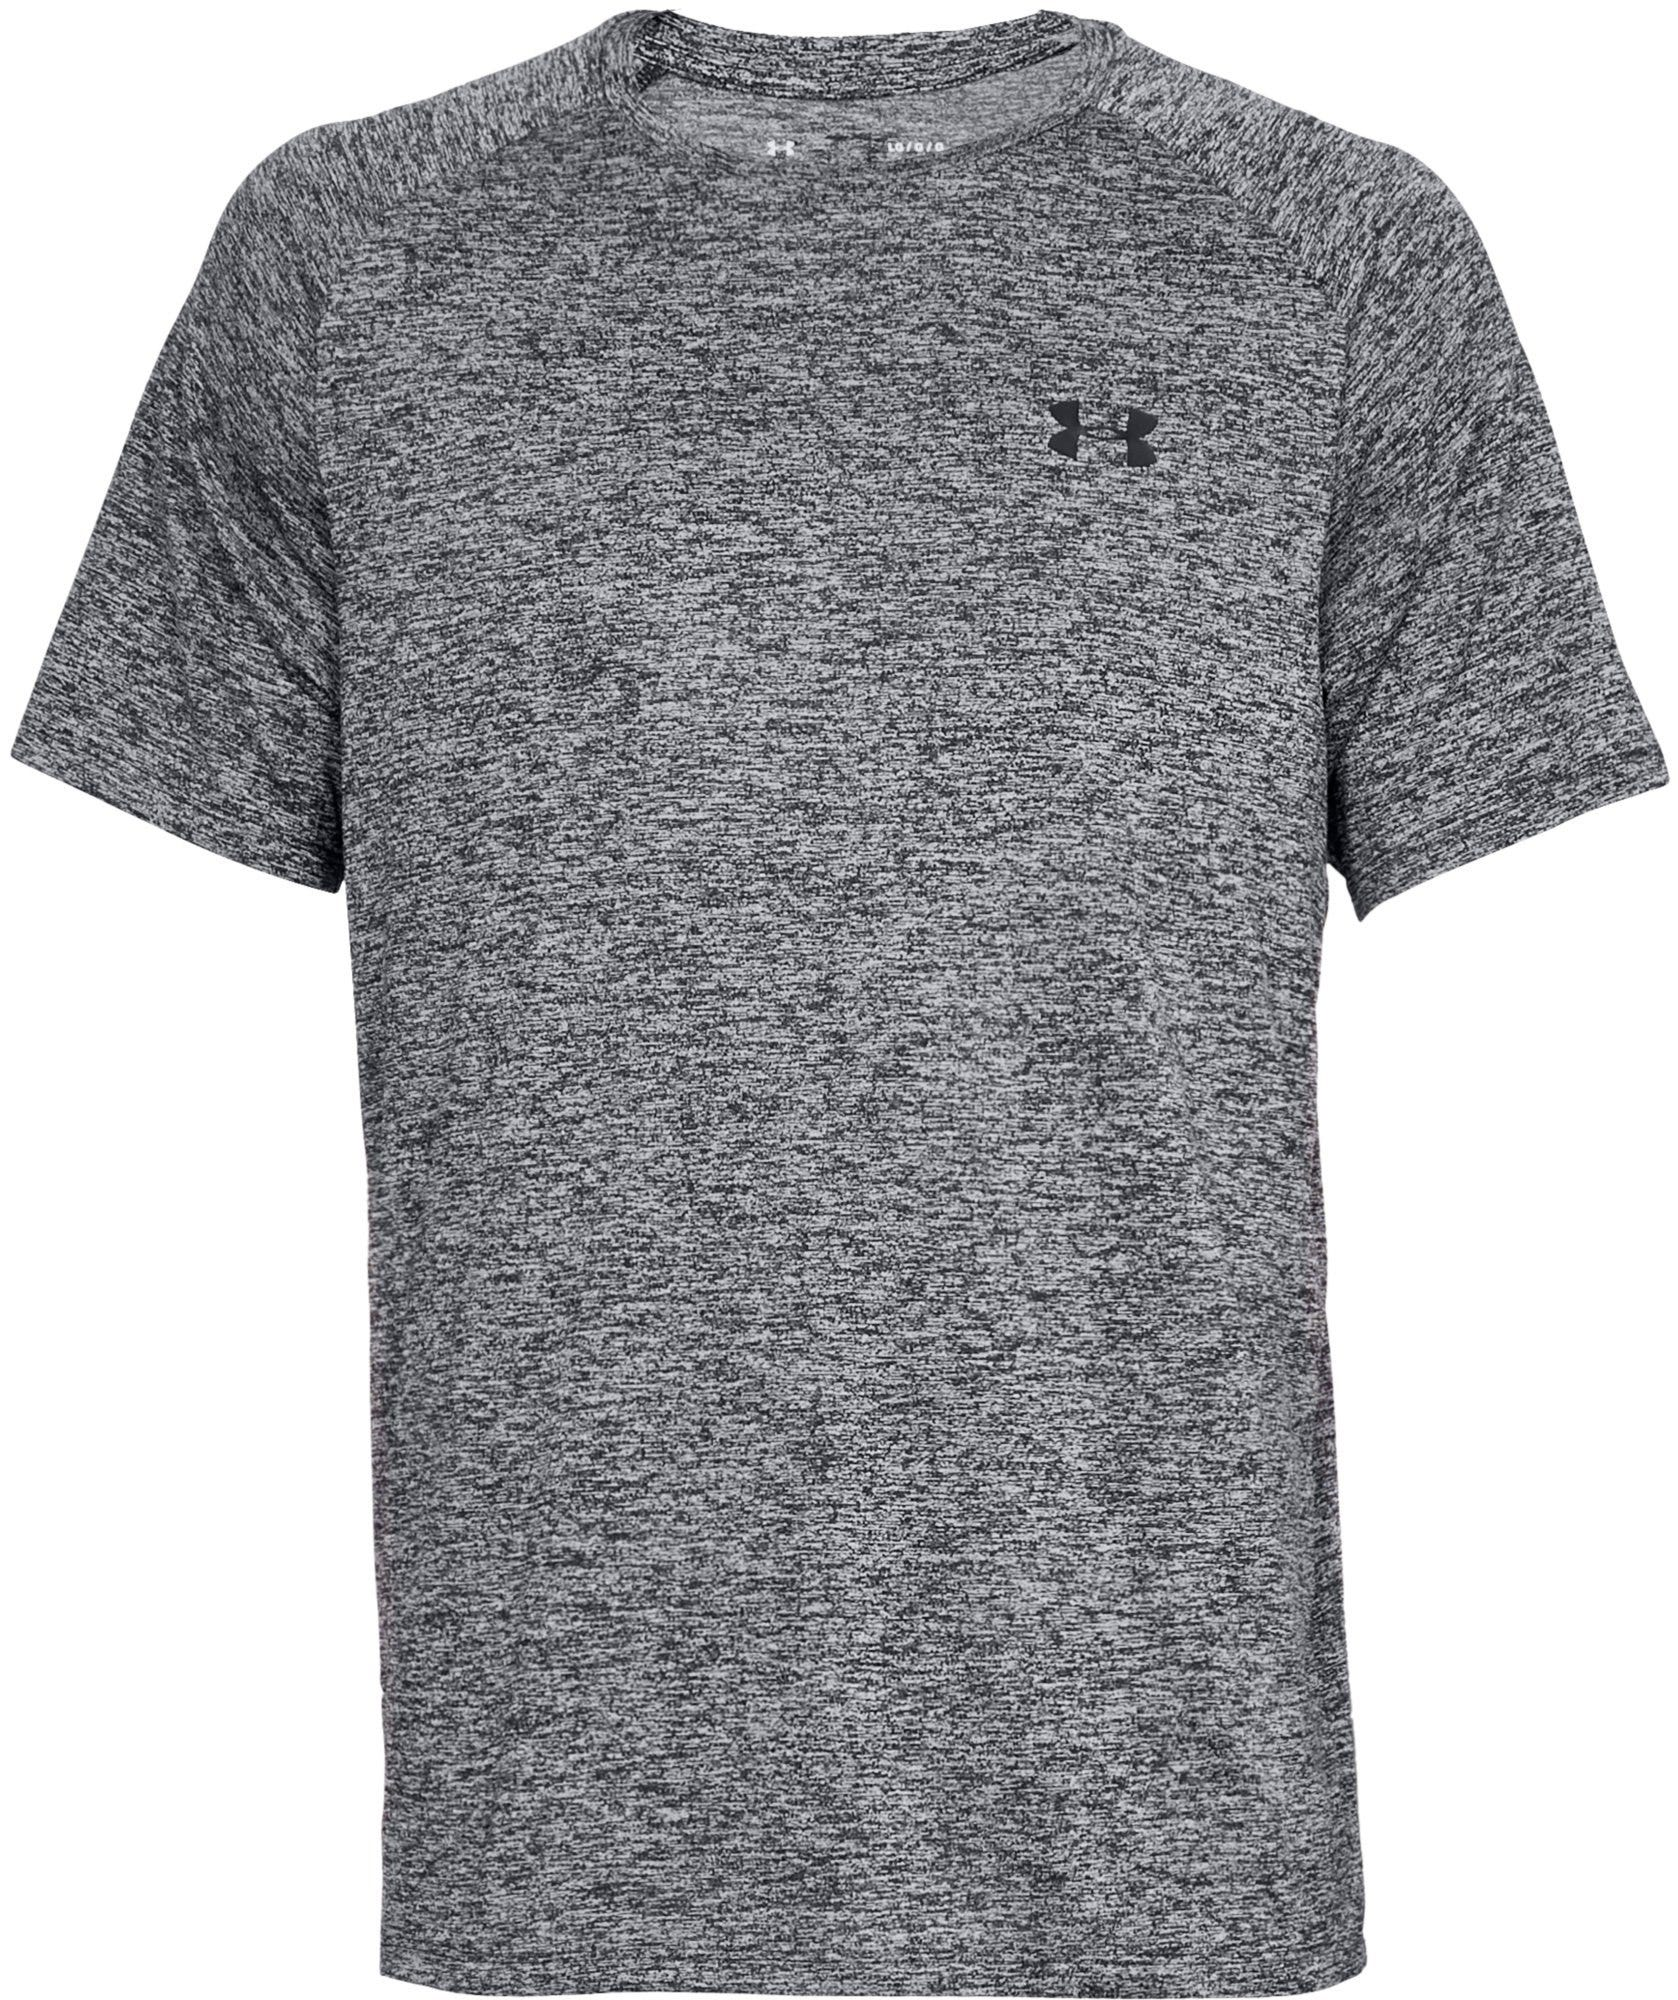 buy cheap under armour clothing